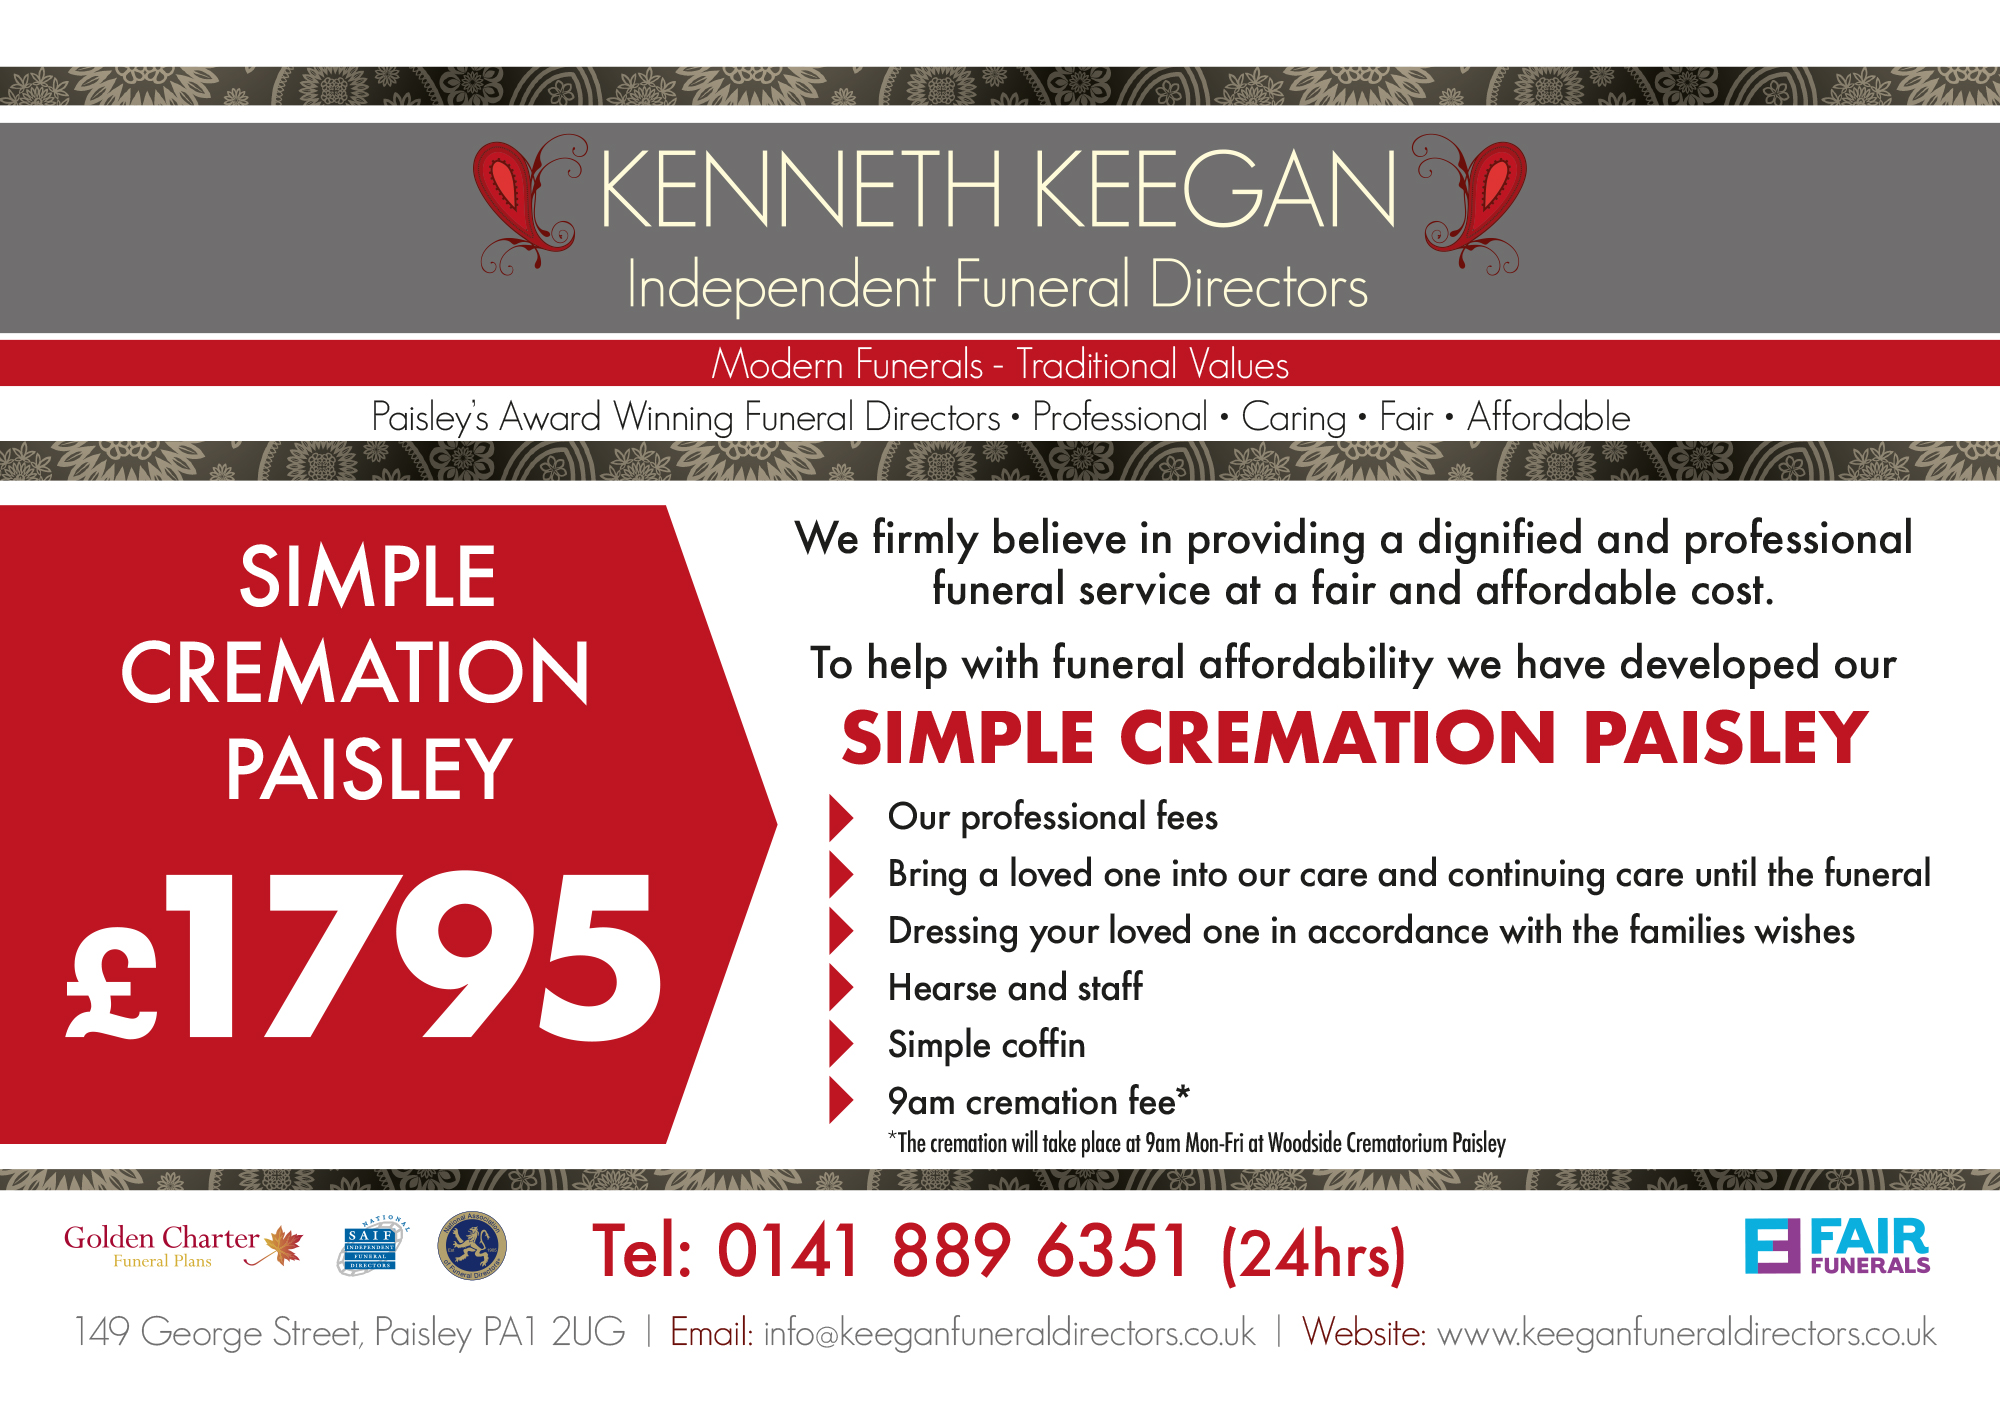 Kenneth-Keegan-Simple-Cremation-Paisley-A4L-31-05-18